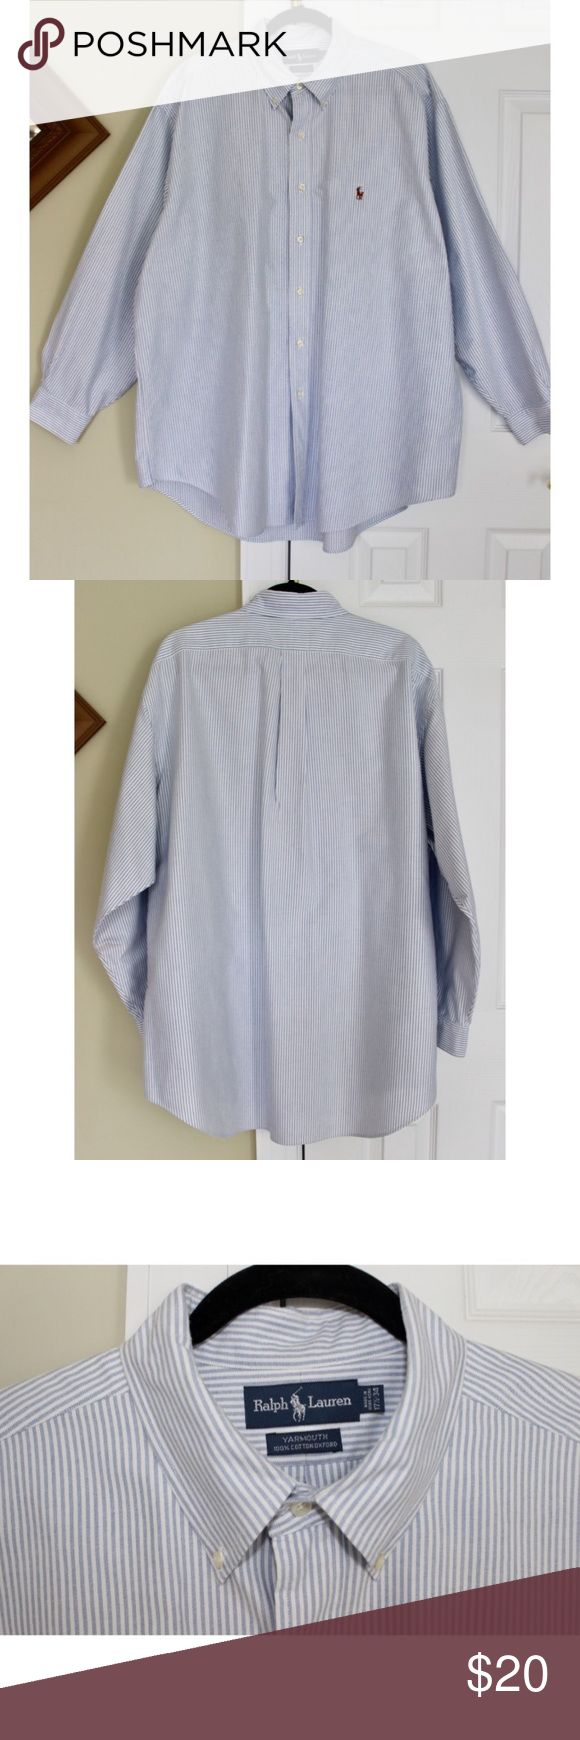 🆕Ralph Lauren Men's Button Down Seersucker Shirt This pinstripe Ralph Lauren Button Down Shirt is in great quality shirt!  It's very professional and stylish. It has light blue and white vertical stripes and has the polo man logo on the chest. There was a stain on the right side of the shirt next to the 2nd and 3rd Button from the bottom.  I've treated the stain and it is extremely faint, to the point where even my professional camera and eyes cannot pick it up without it being in direct…